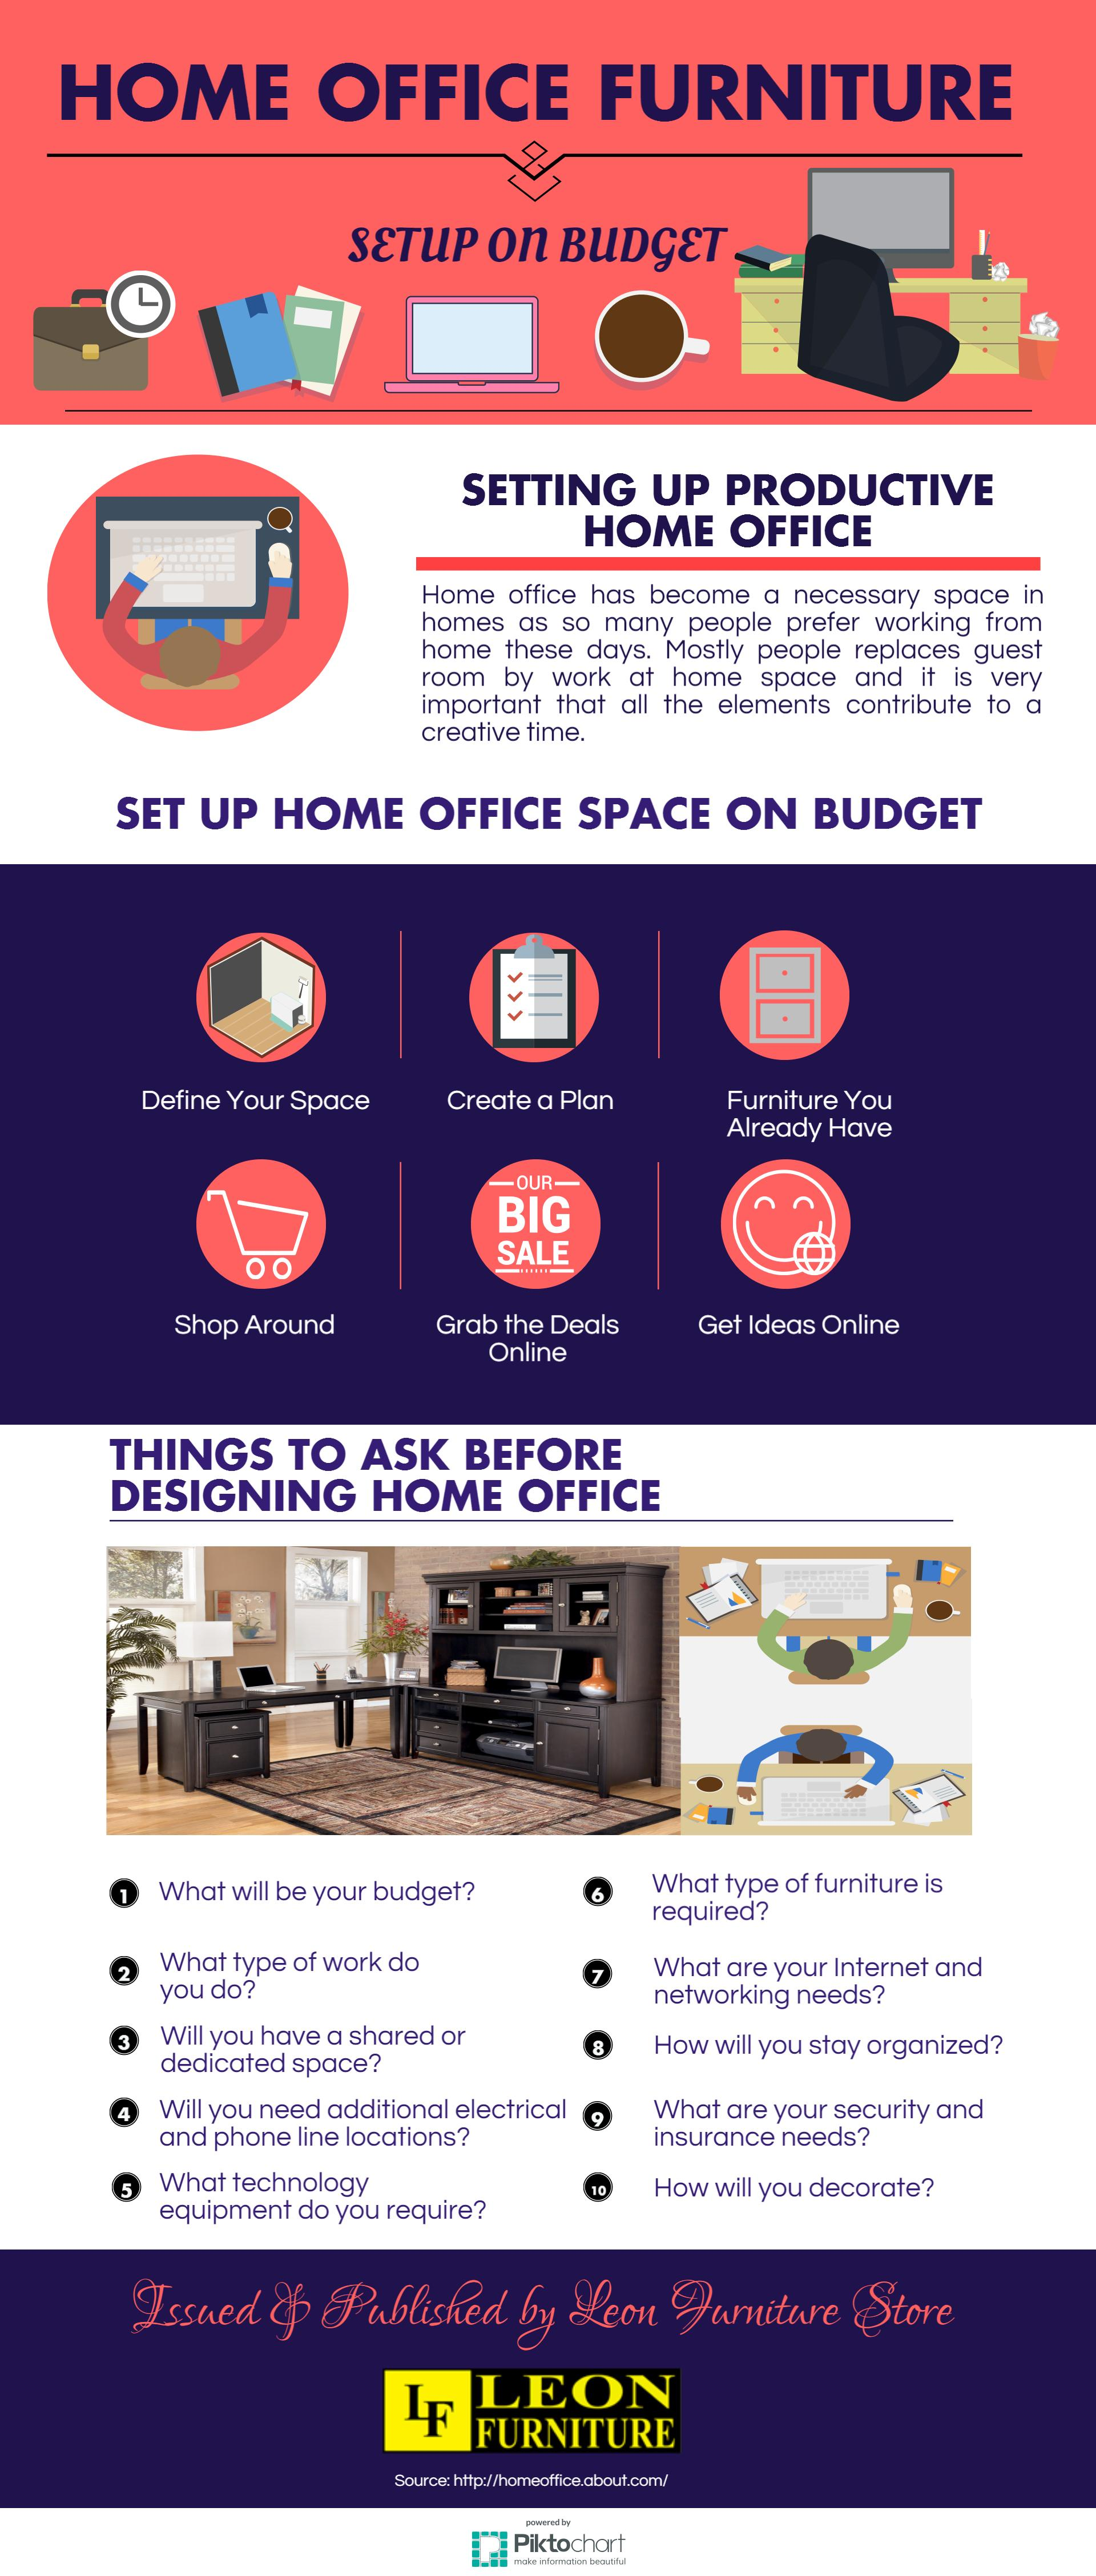 Budget home office furniture Medium Size Home Office Furniture Set Up On Budget Leon Furniture Store Wordpresscom Home Office Furniture Set Up On Budget Leon Furniture Store